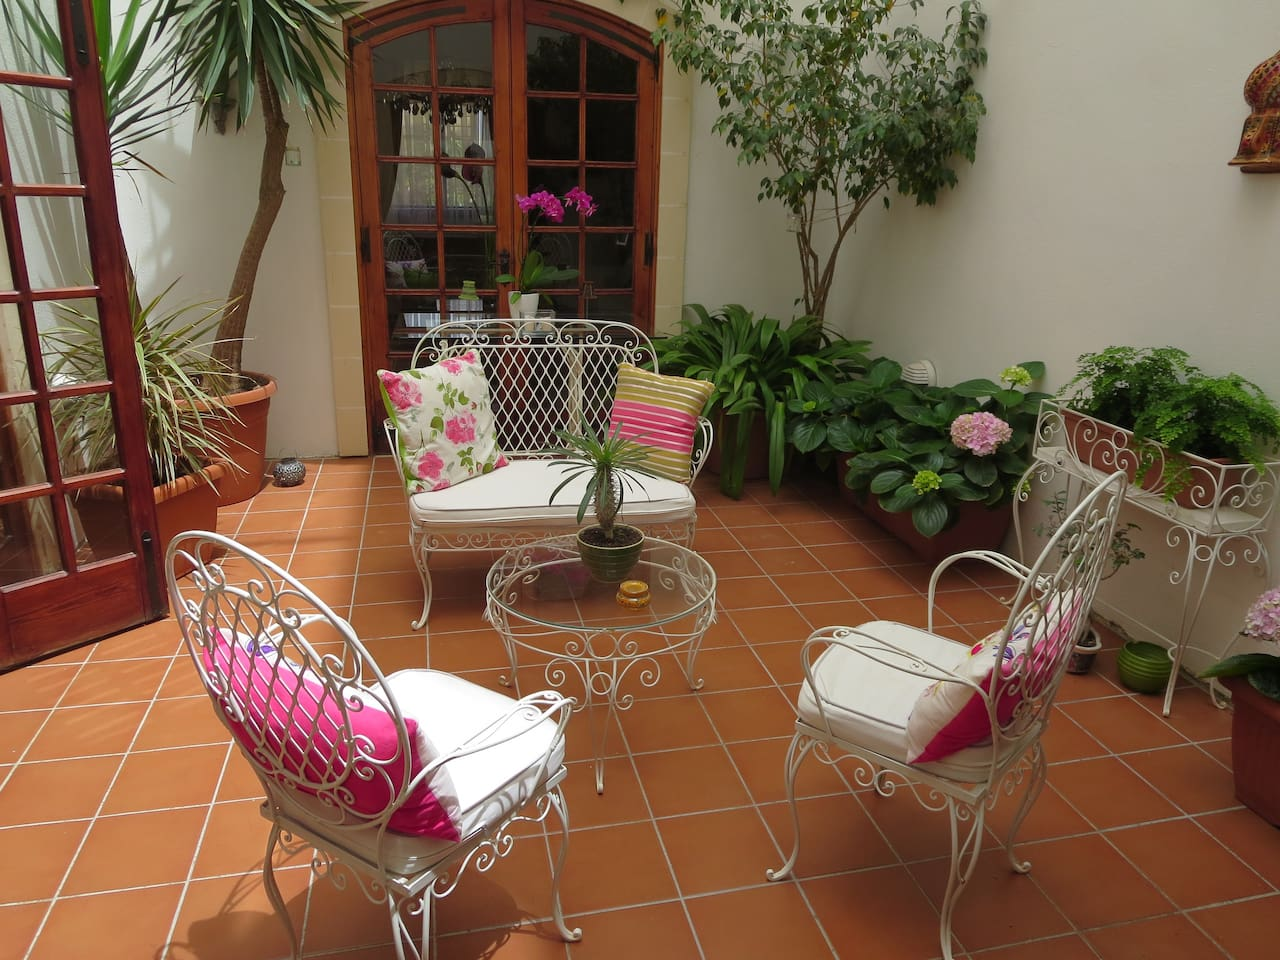 Sunny internal courtyard - a lovely and peaceful relaxation spot, ideal for reading, quiet coffee breaks or a glass of wine. Smoking is only permitted here.